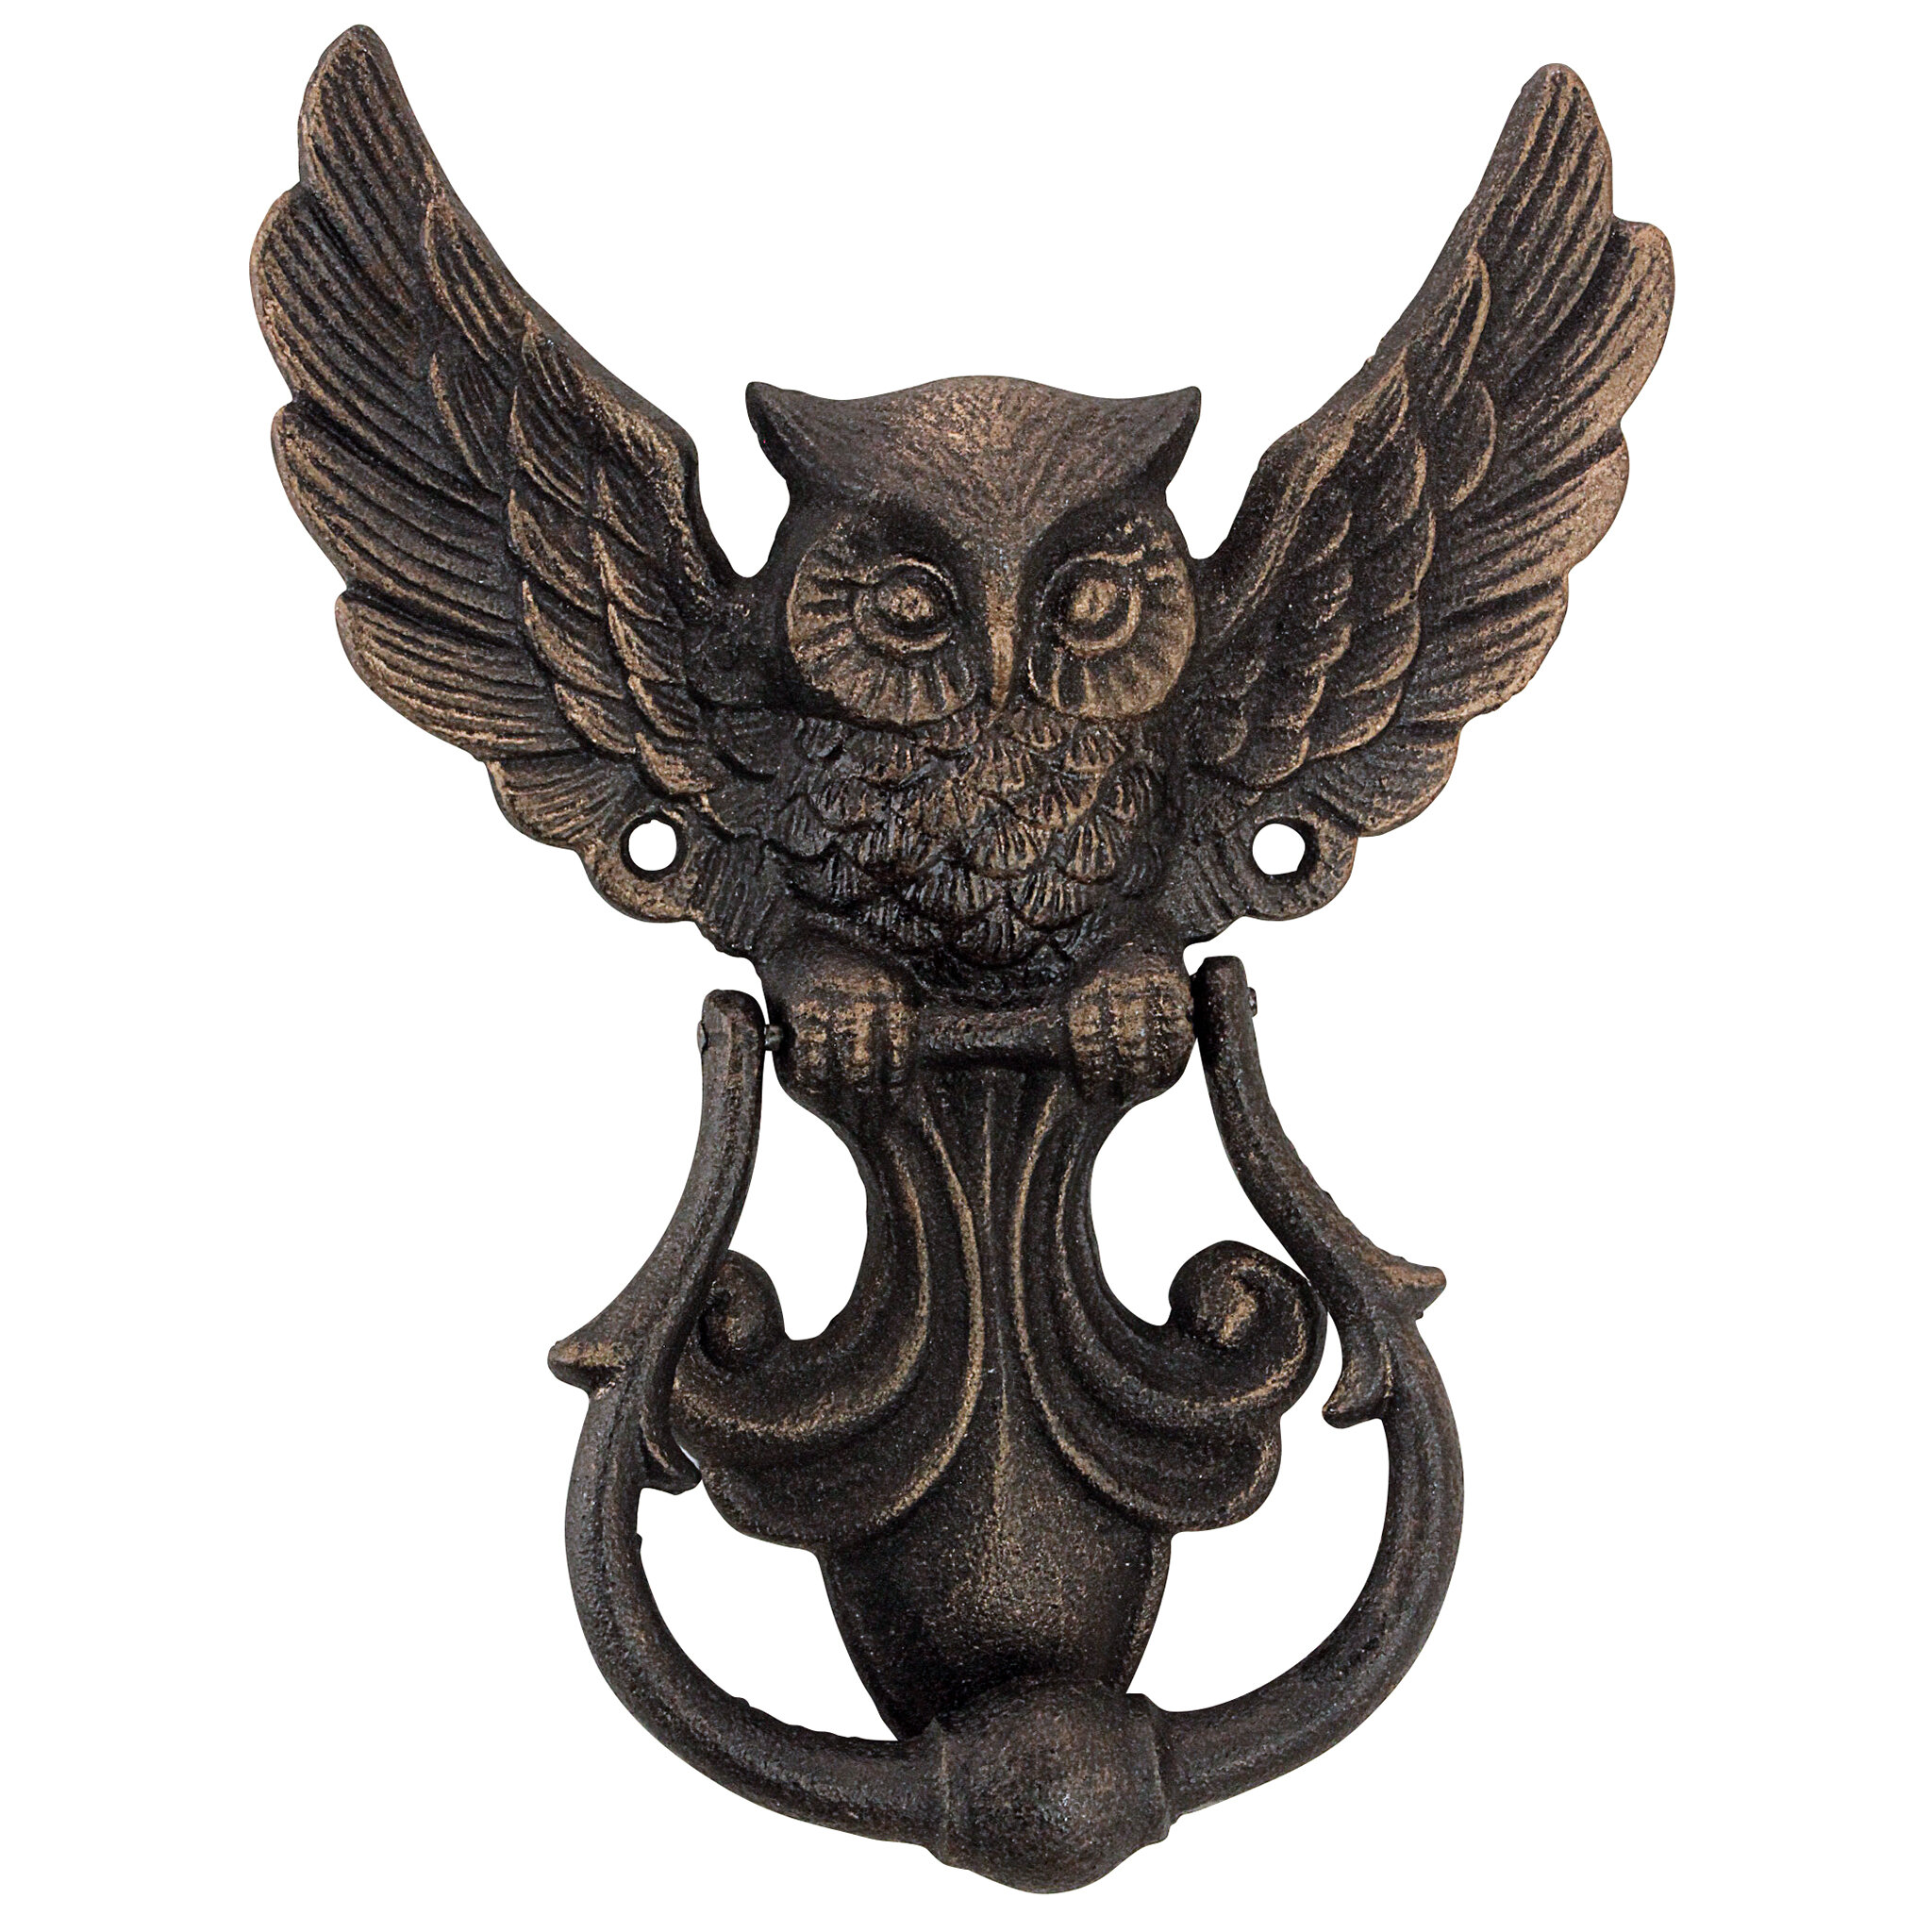 Genial Design Toscano Mystical Spirit Owl Authentic Foundry Door Knocker U0026 Reviews  | Wayfair